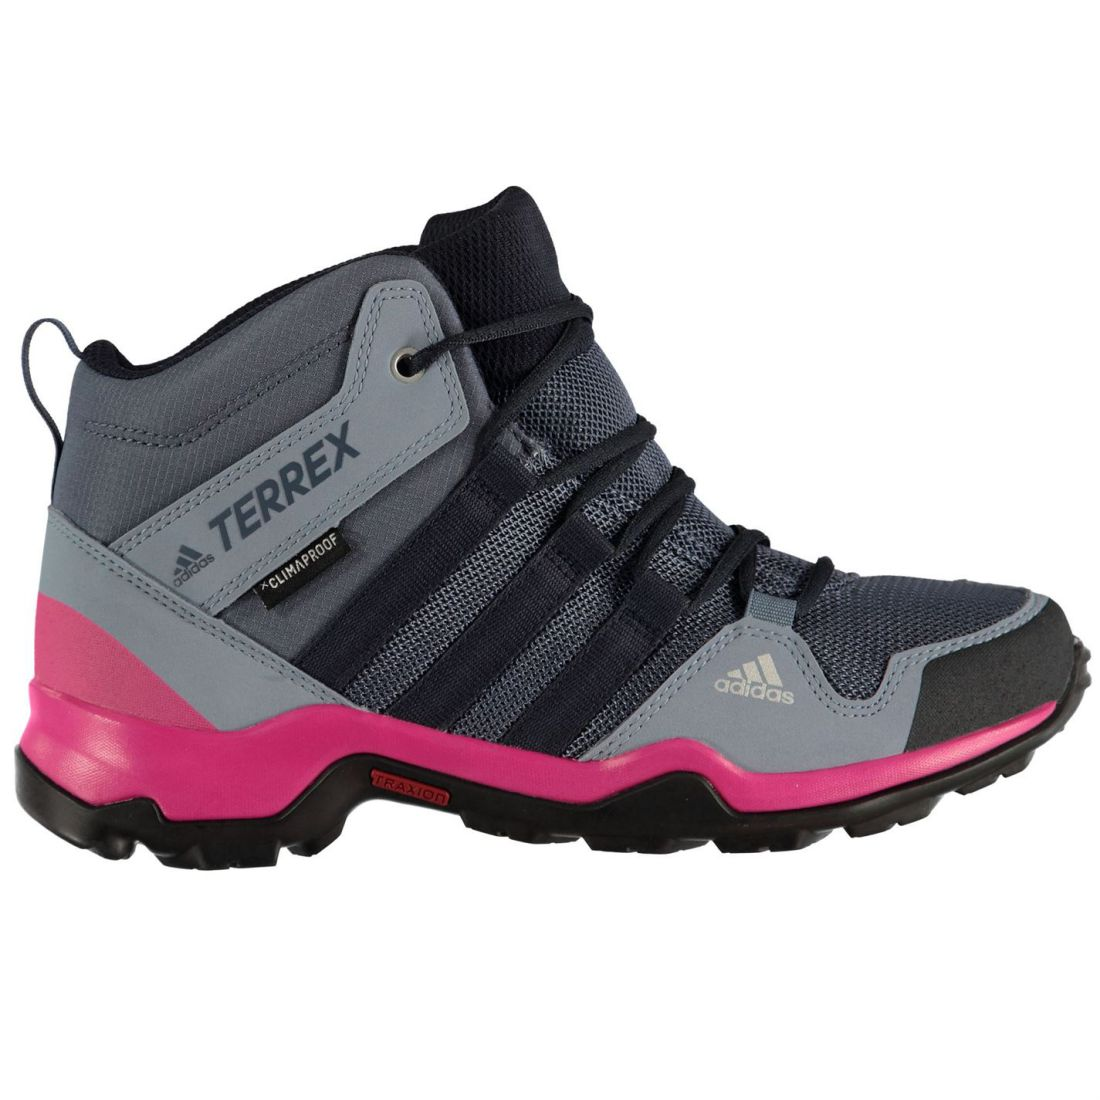 2f8ba5e1b14 adidas Terrex AX2R Mid Youngster Girls Walking Boots Laces ...